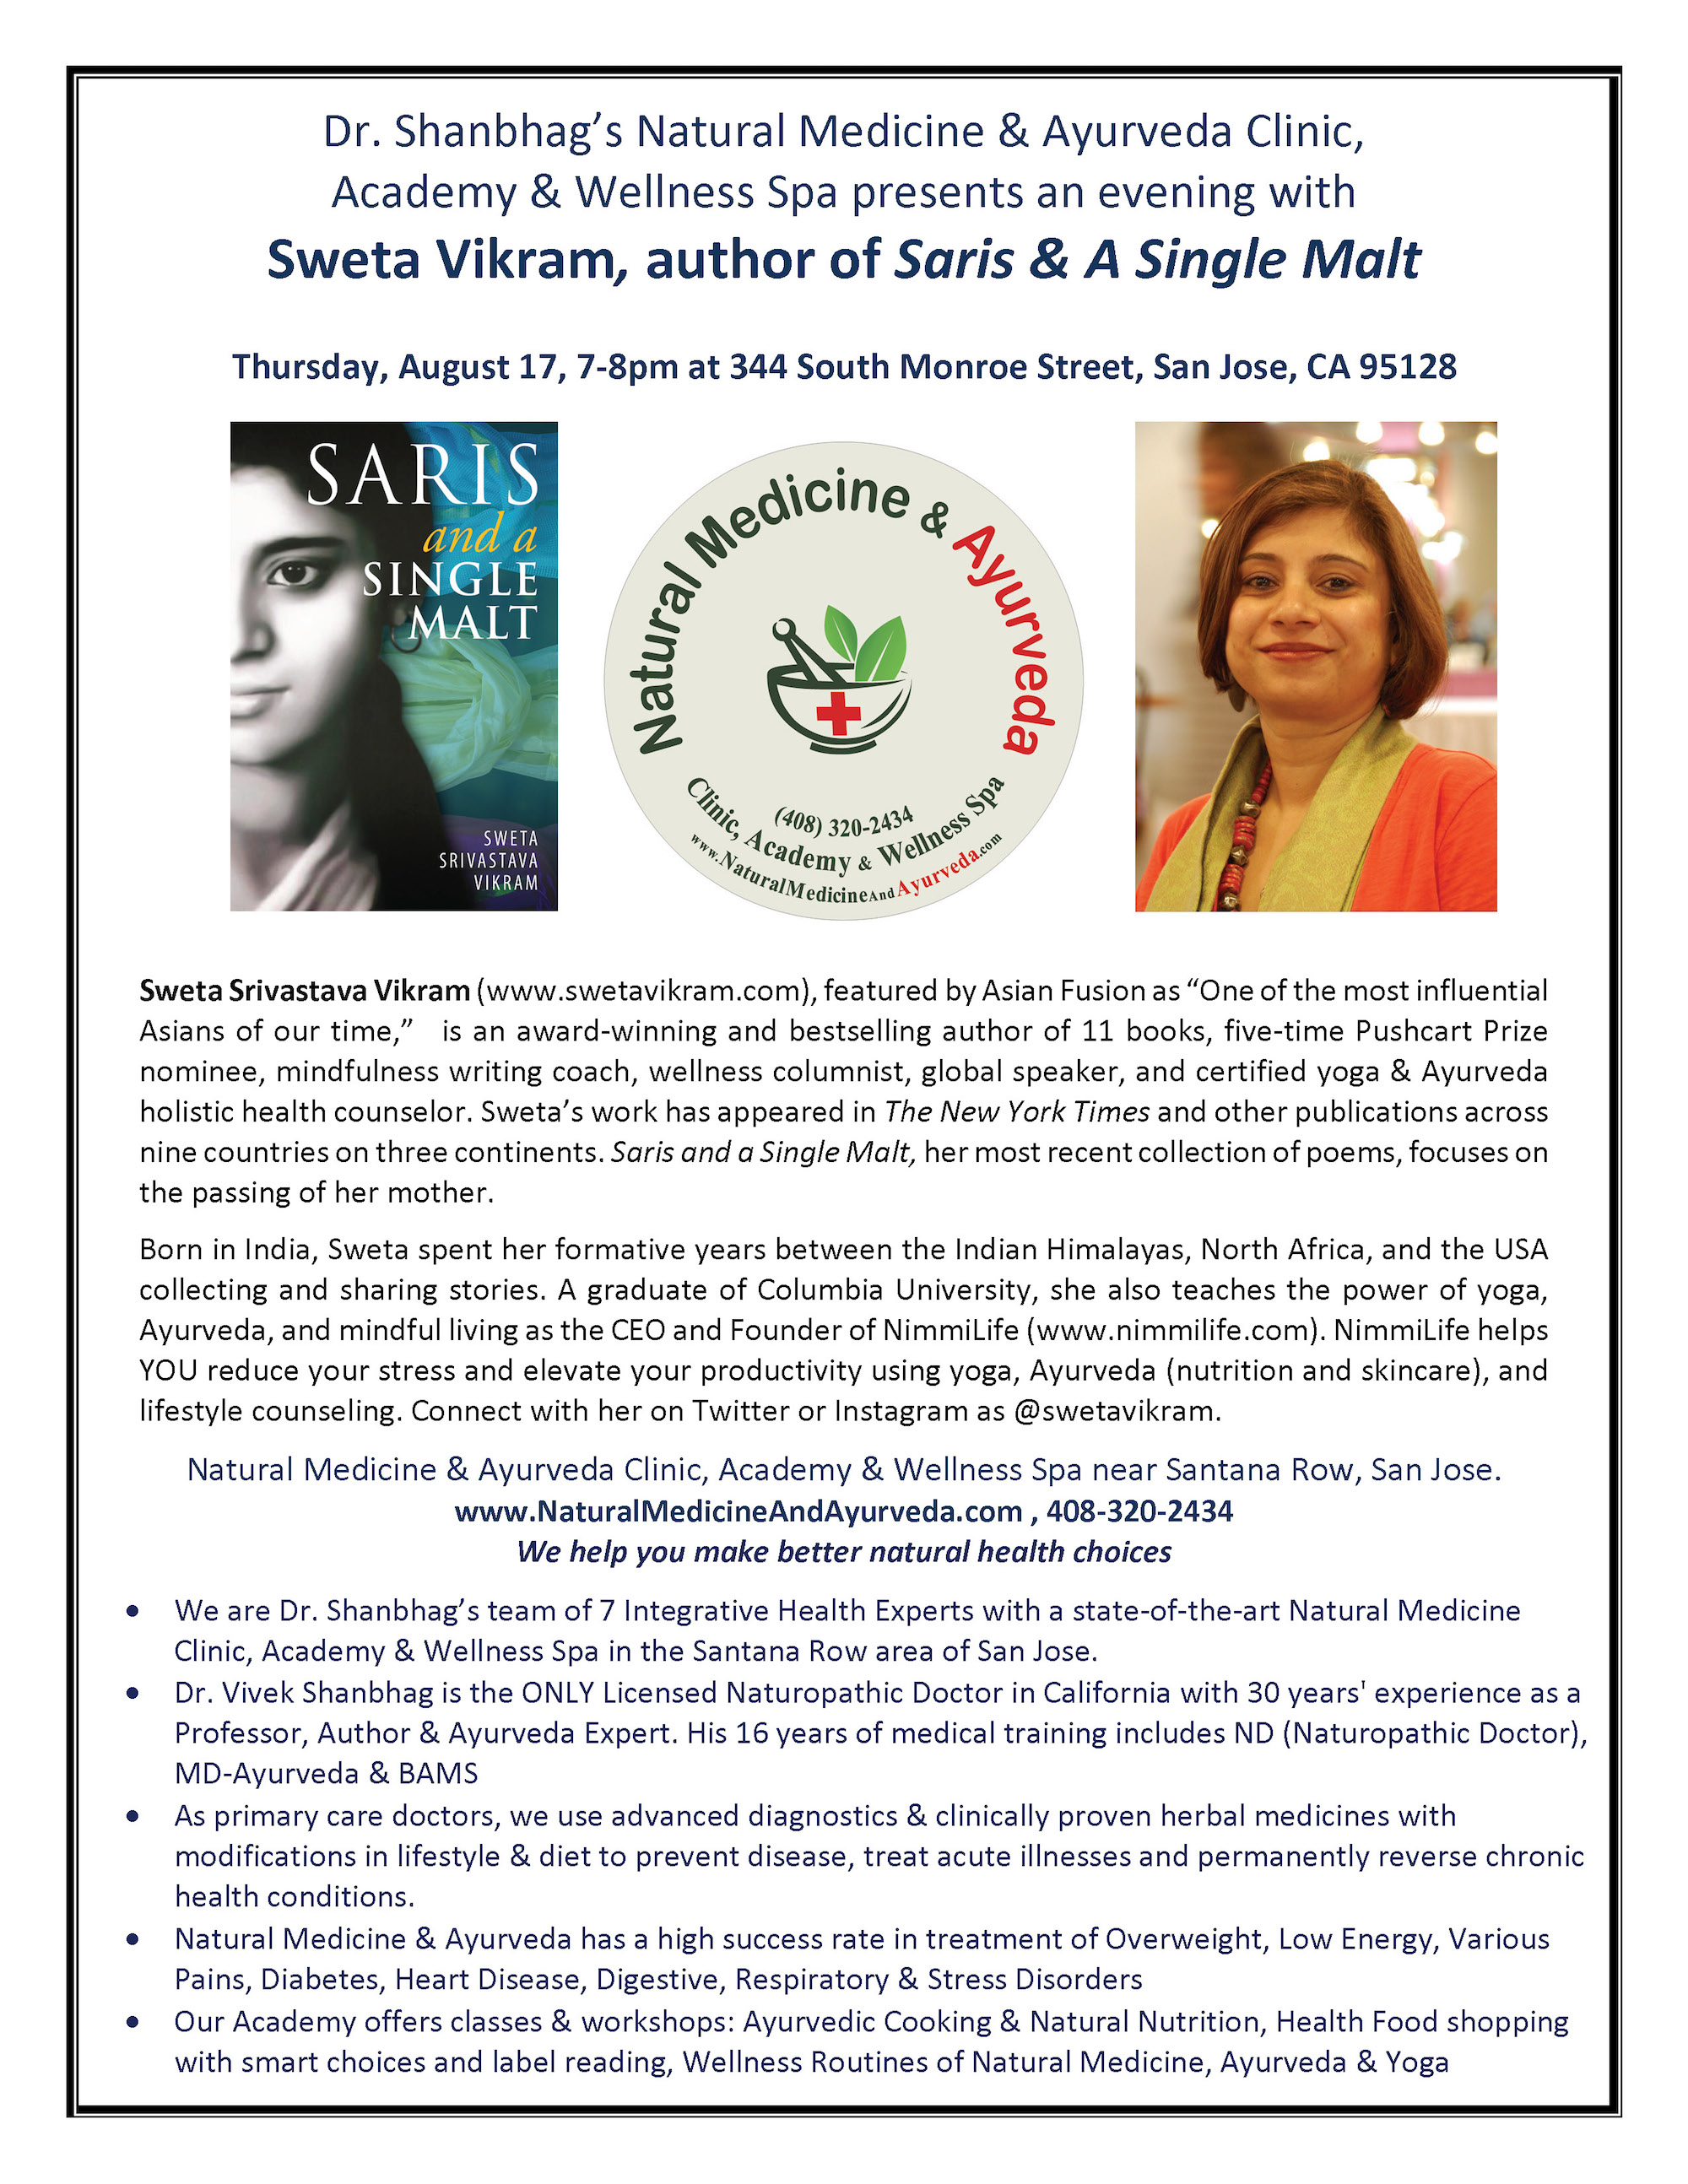 Sweta Vikram - SAASM California Event Flyer